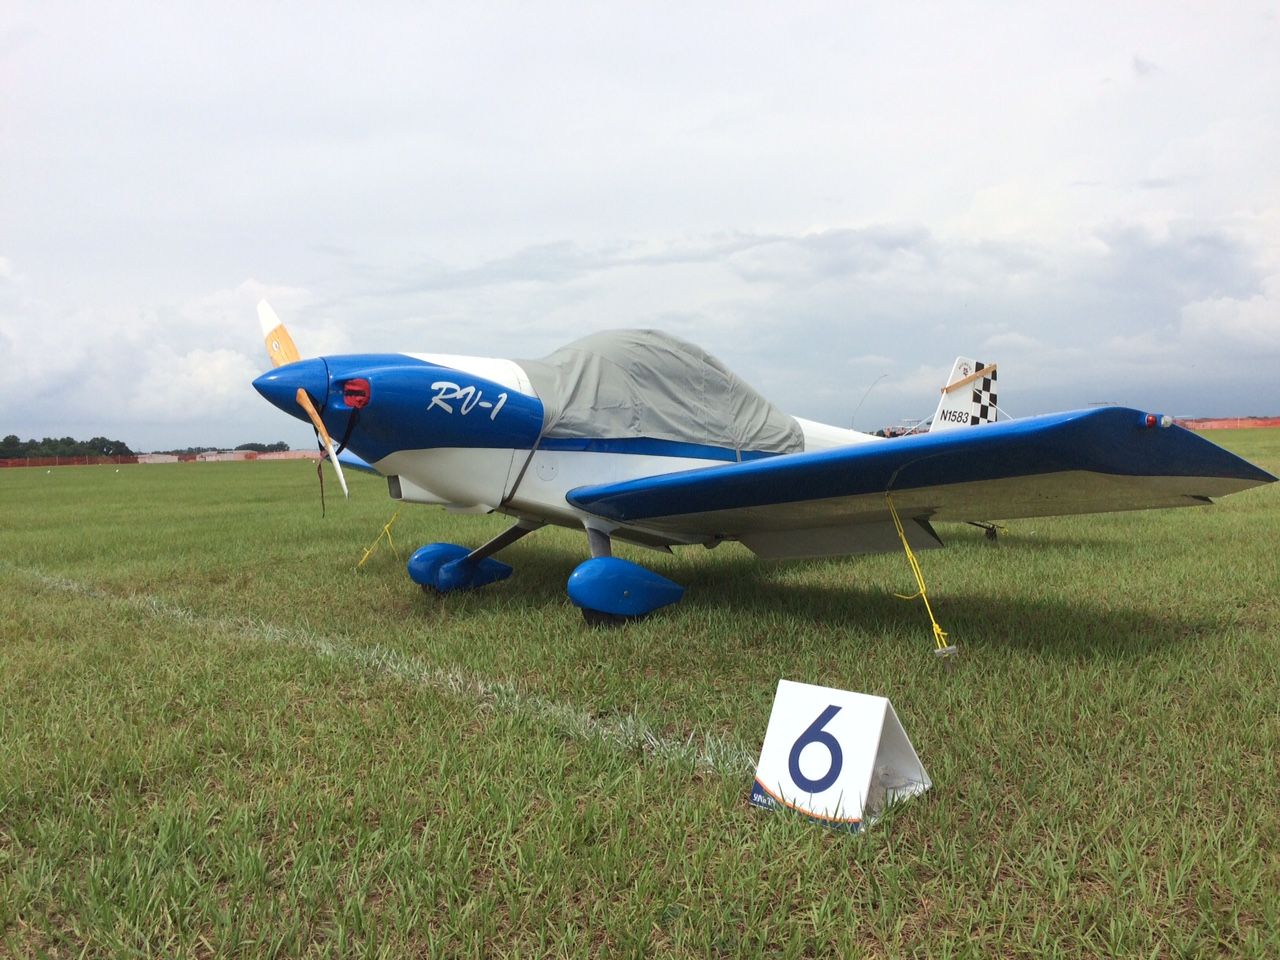 The only flying RV-1 ( one of two built) is here in Sun N Fun for the show - See it parked next to home built headquarters!